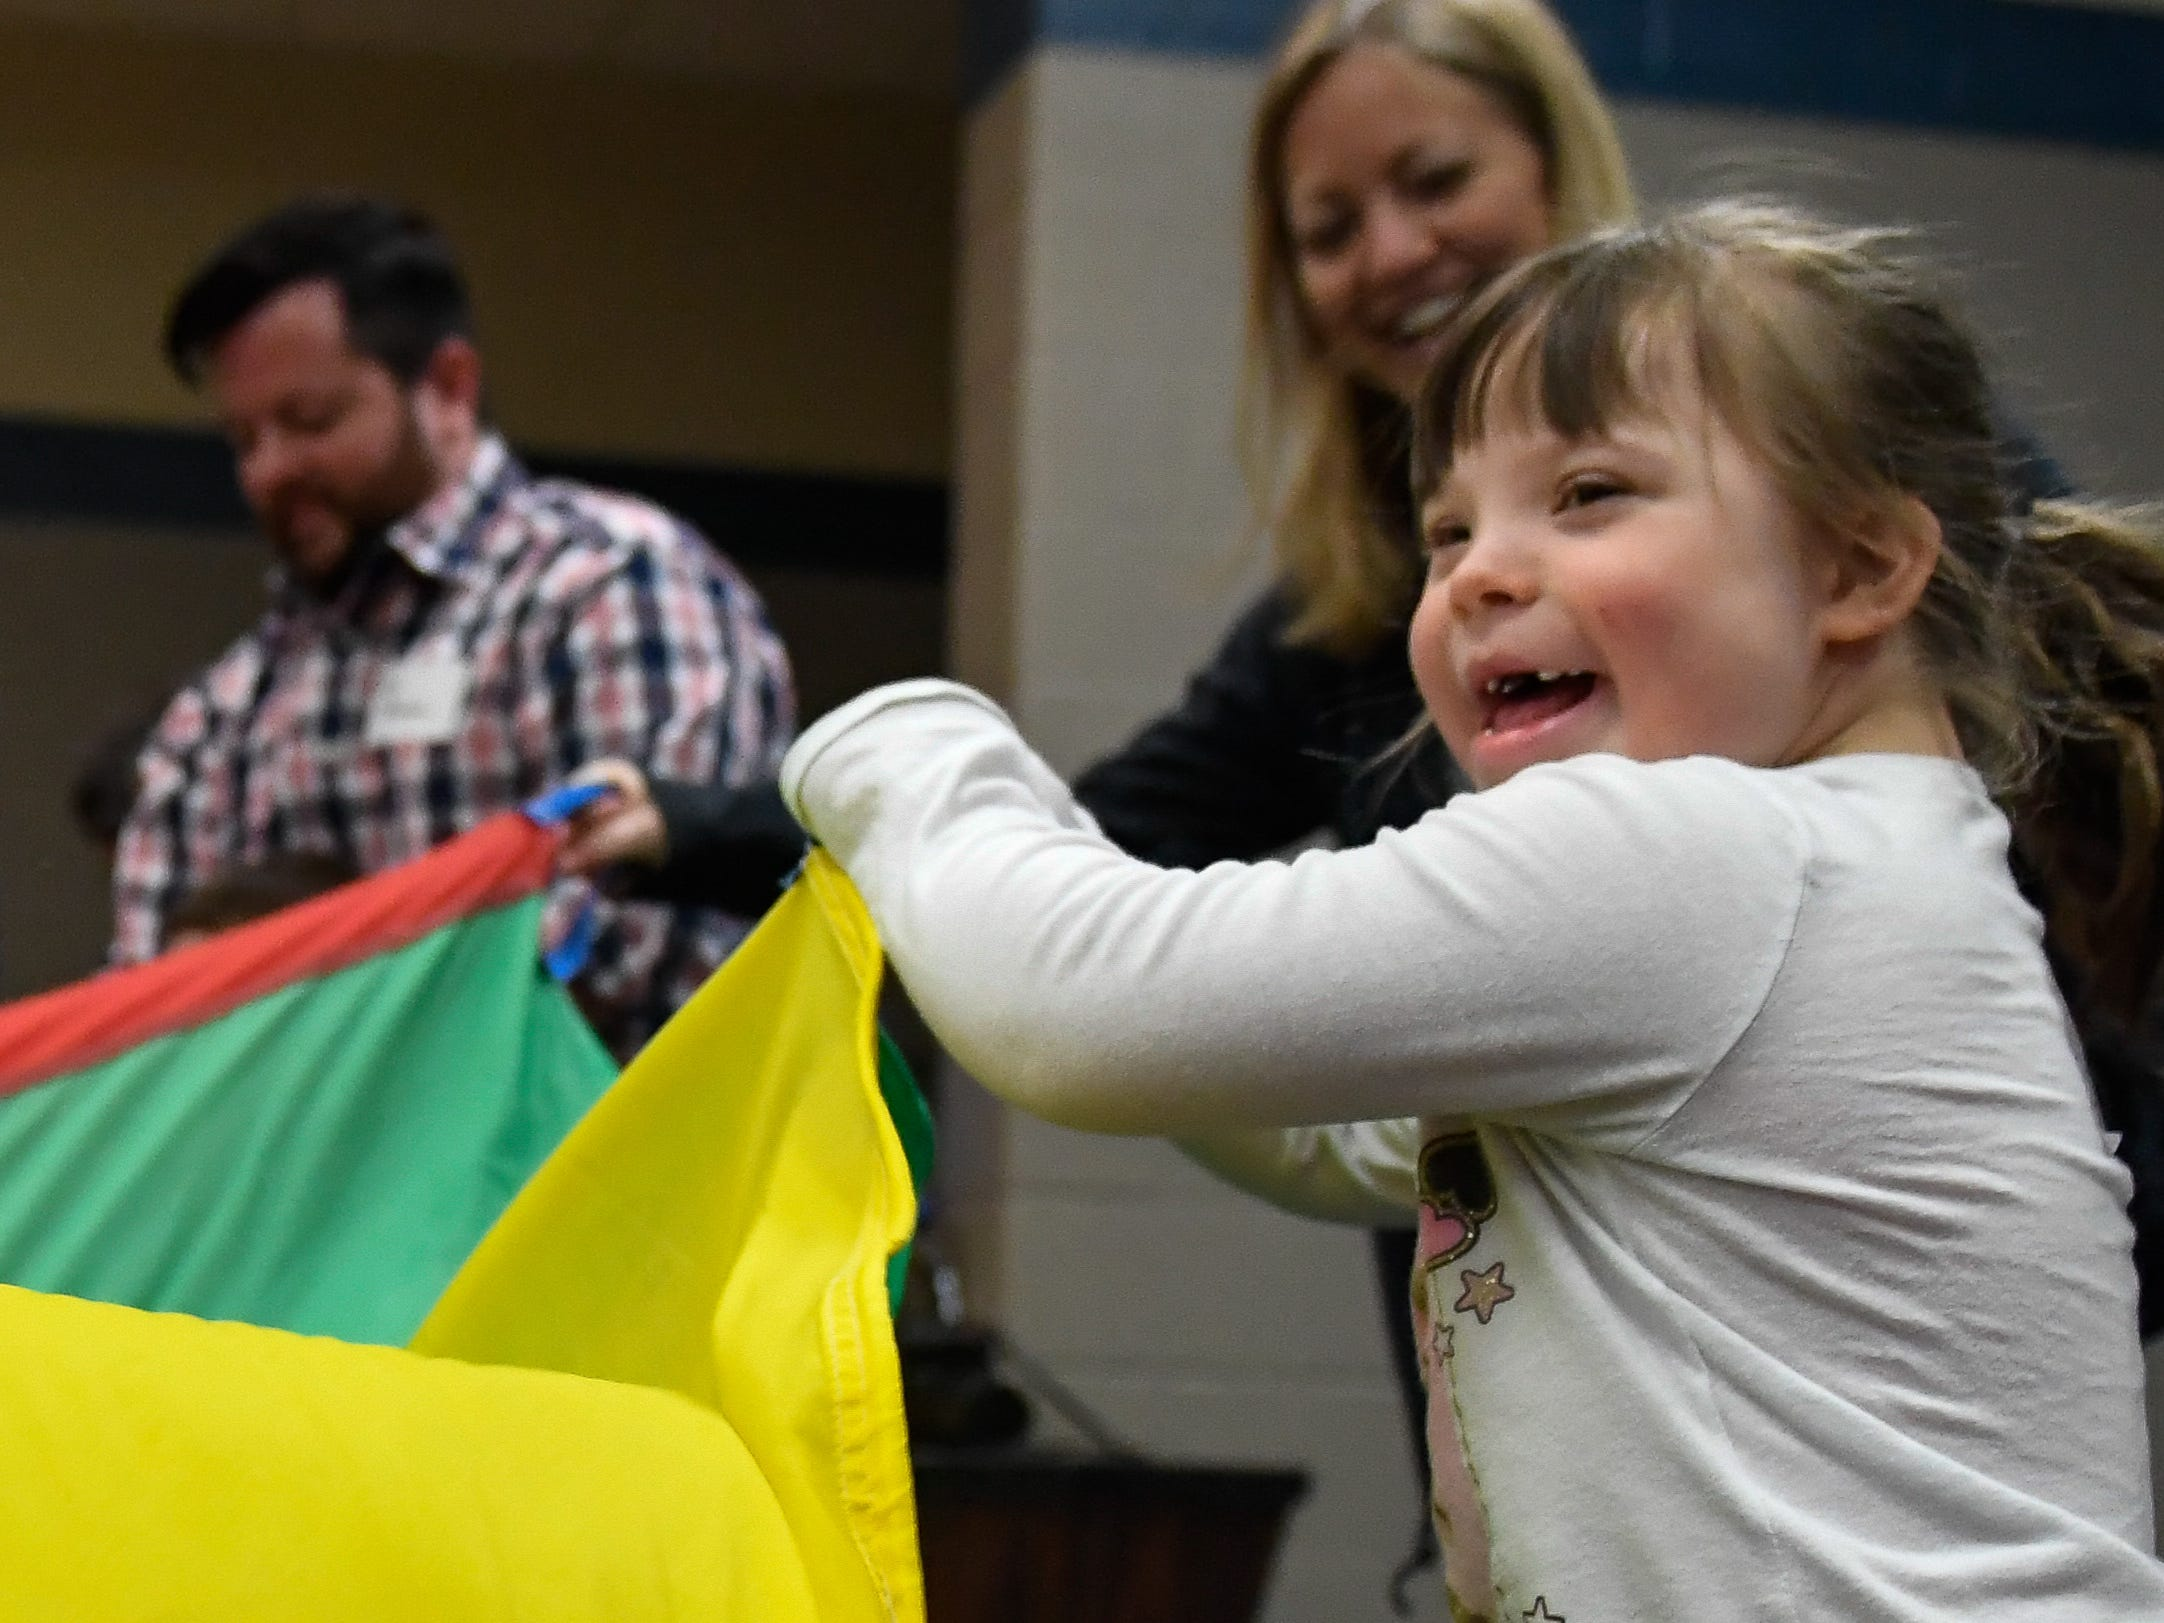 Emelia Carmack, 9 years-old, plays with a parachute during the Special Olympics Unified Champion School Young Athlete program at Culver Early Learning Center Friday, March 22, 2019.